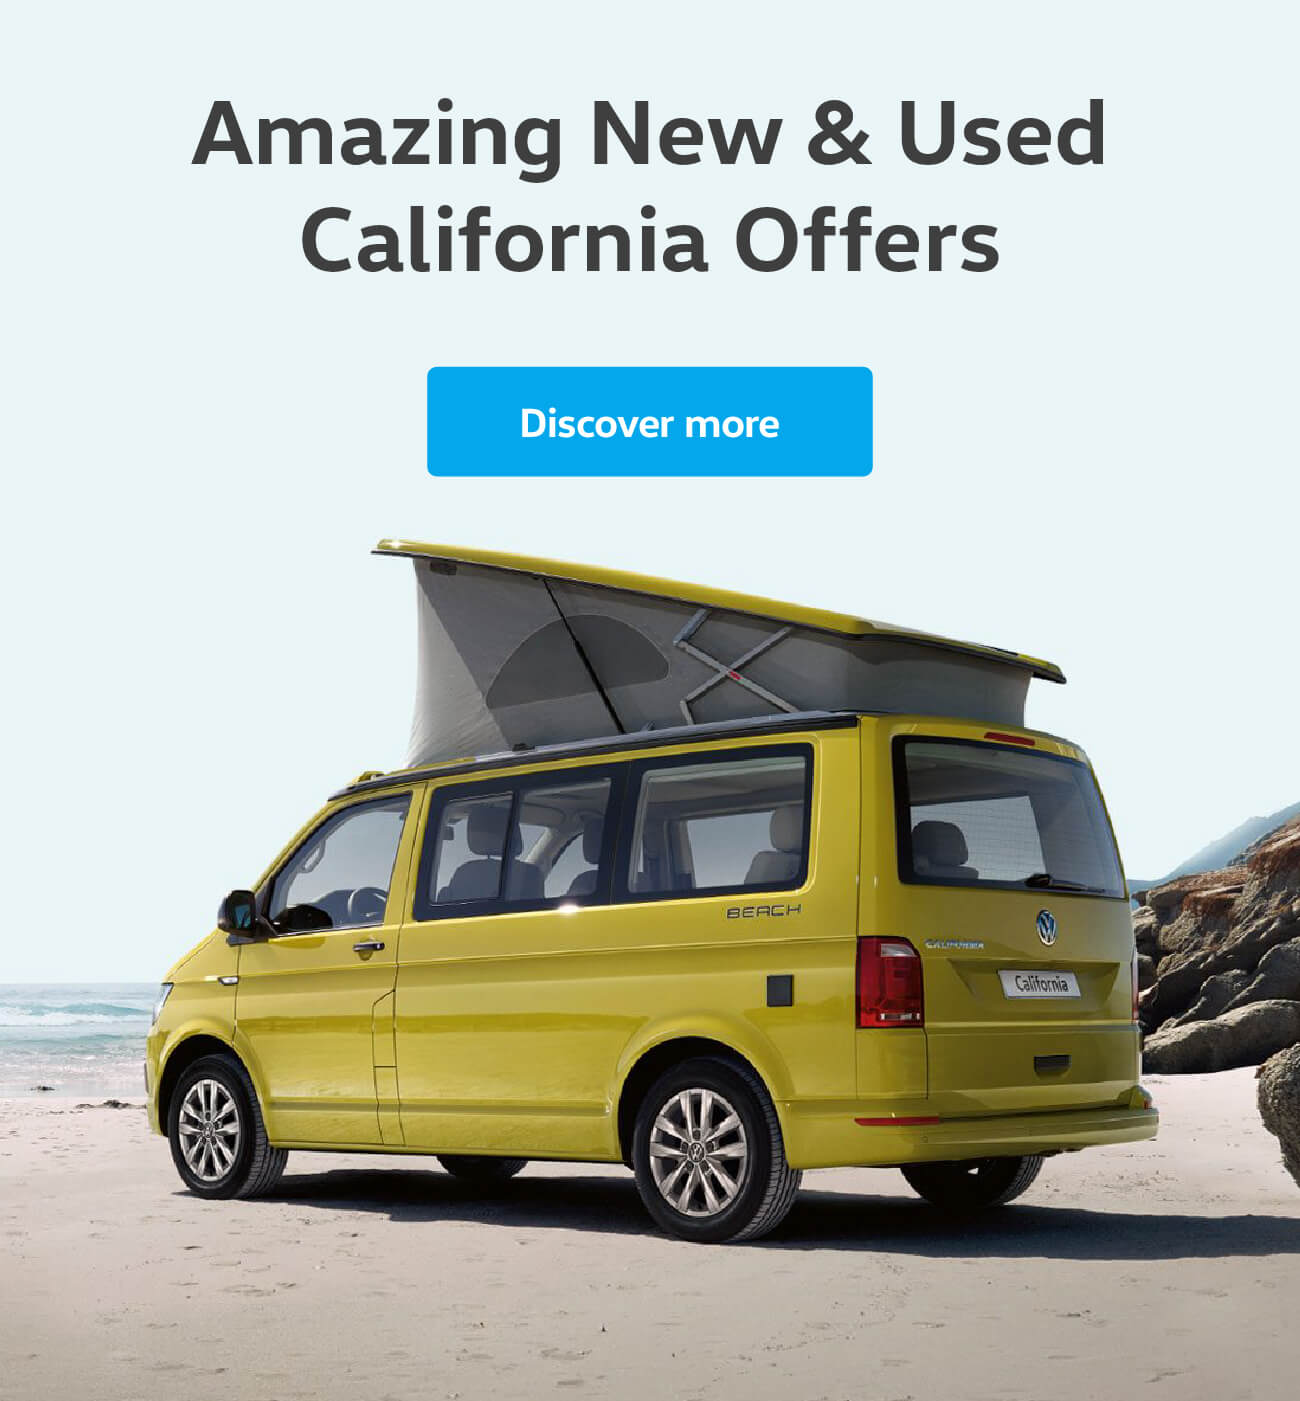 Volkswagen California Offers